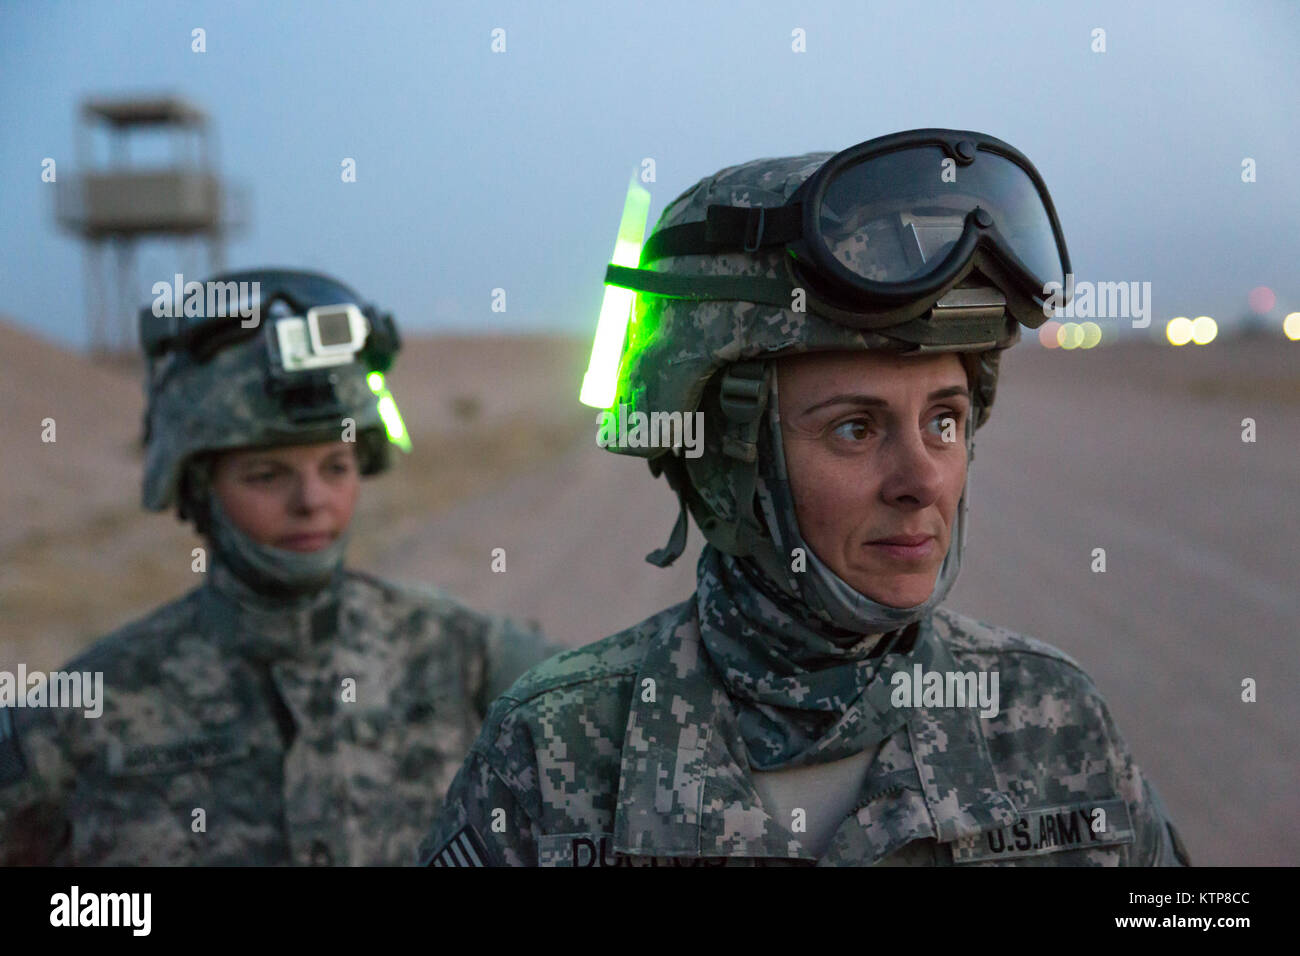 Sgt. First Class Joann Duclose (front), a senior human resources sergeant, and Master Sgt. Cindy Marcinkowski, the Stock Photo